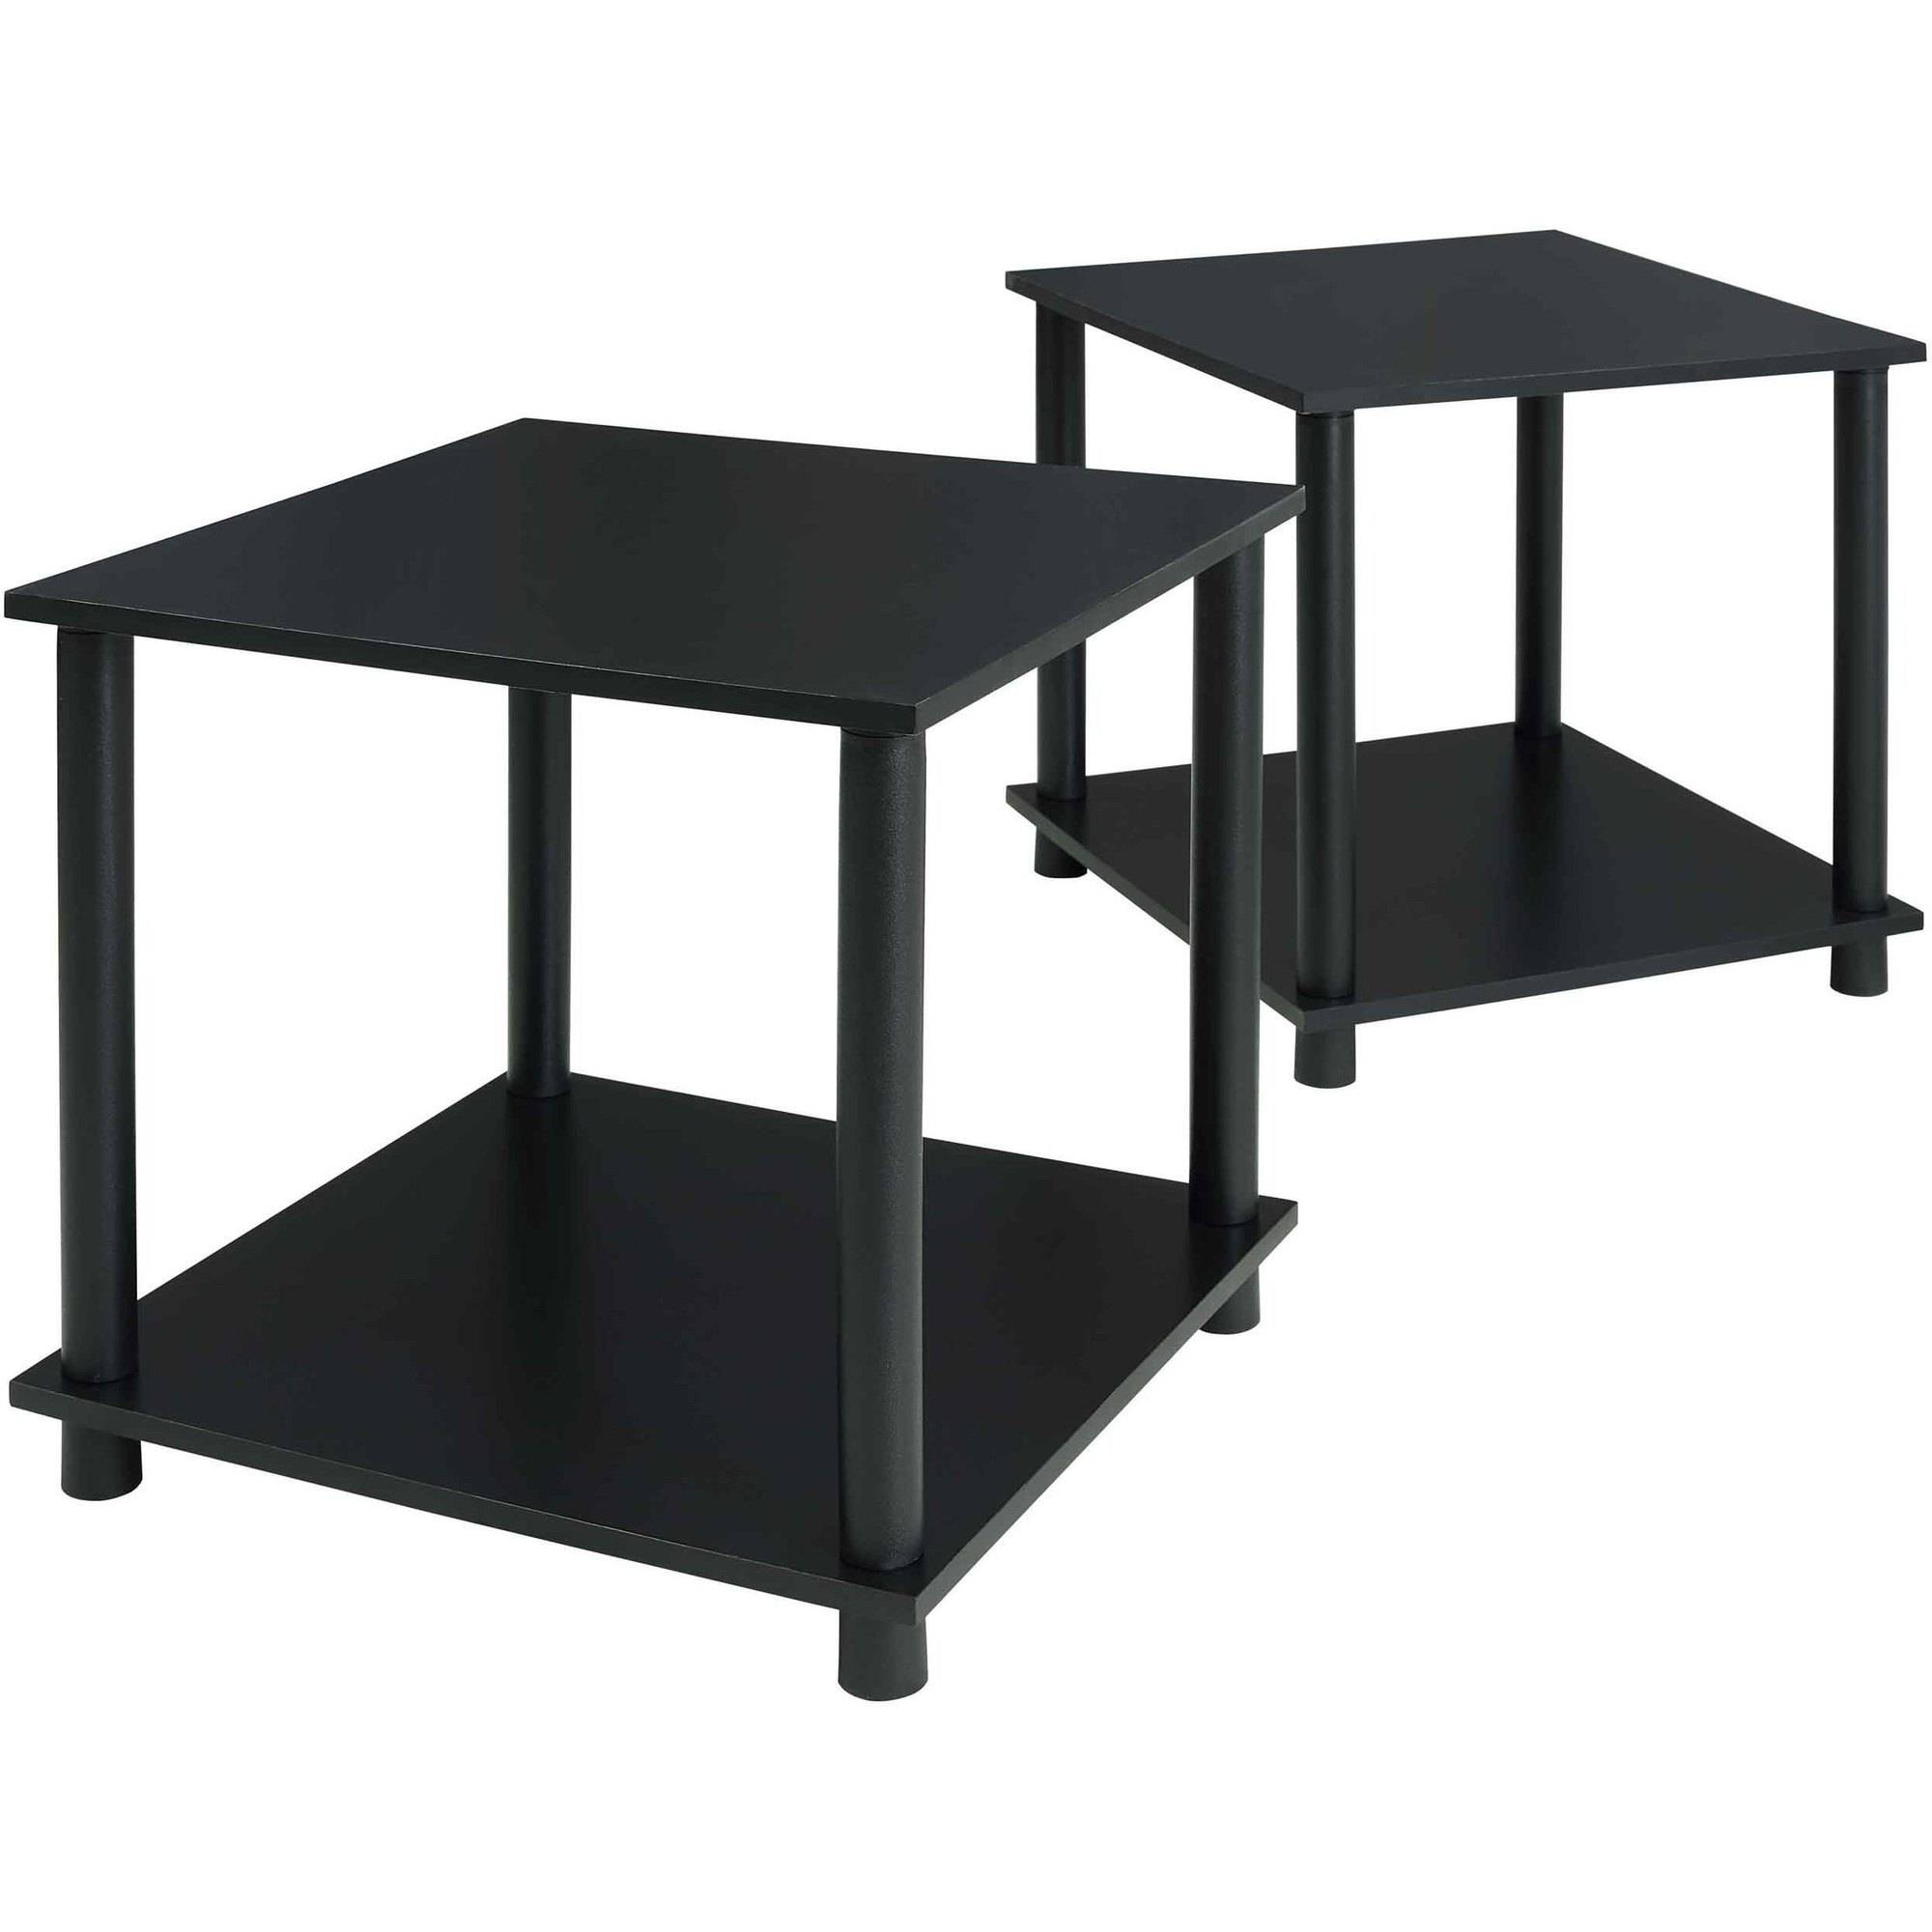 mainstays tools pack end table solid black storage accent room essentials bedside dresser furniture toronto wide carpet transition strip big lots tables target skinny console ikea